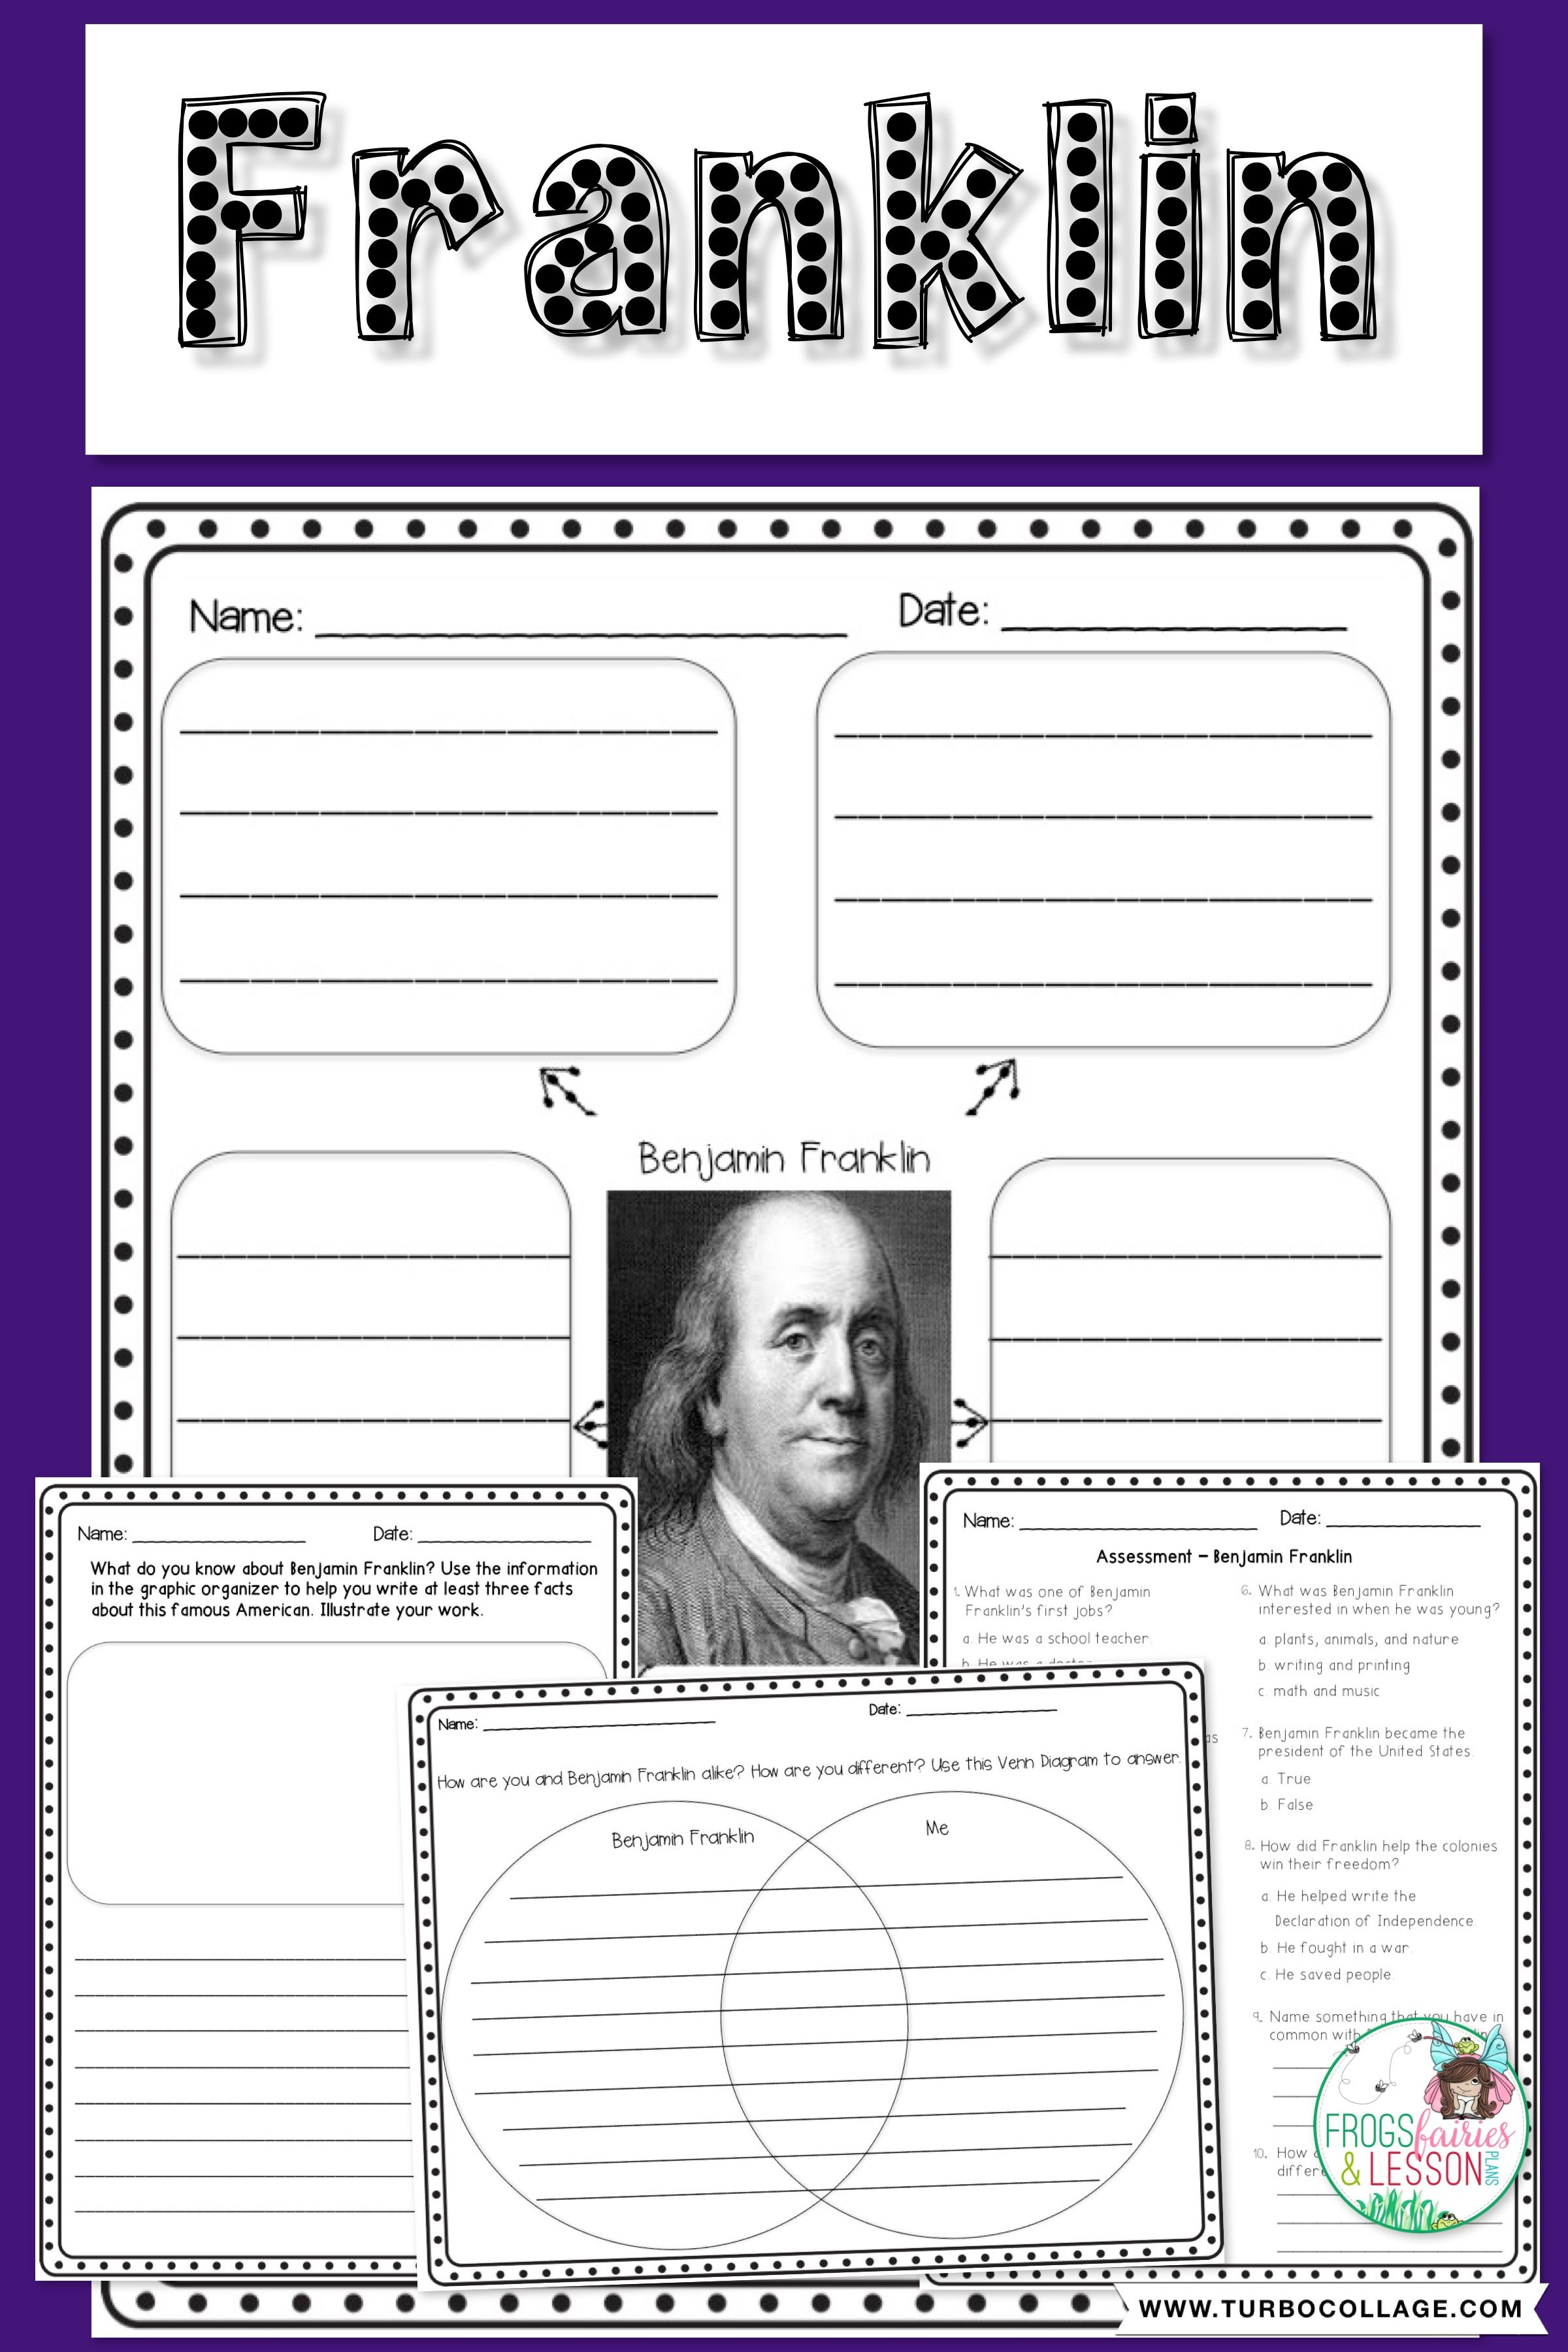 Benjamin Franklin Packet Contains Graphic Organizers Venn Diagrams Quick Write Pages Assessment Benjamin Franklin Activities Writing Activities Lesson Plans [ 3600 x 2400 Pixel ]